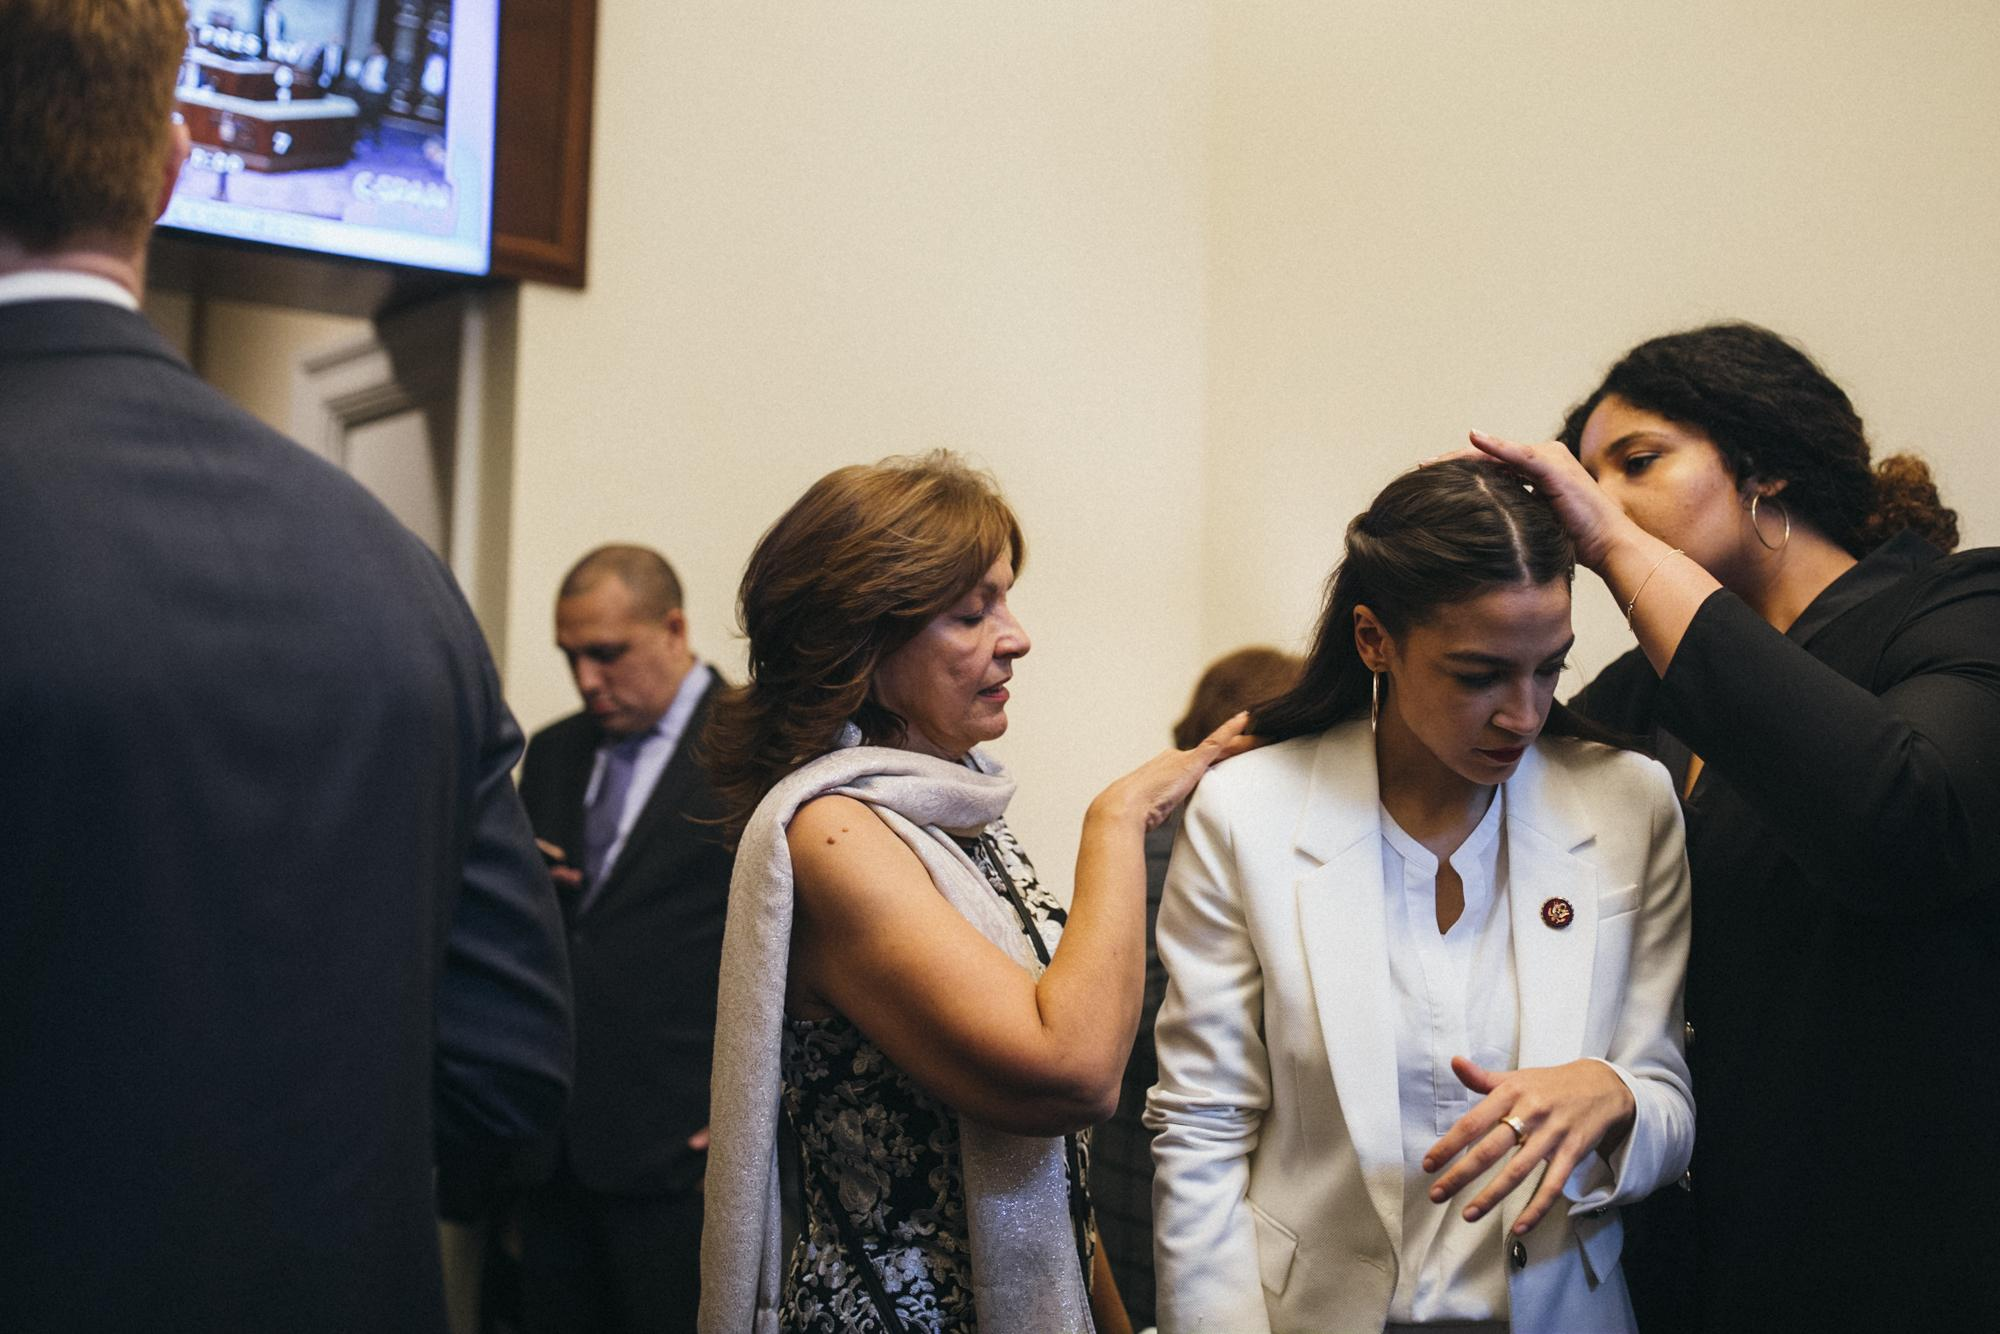 Congresswoman Alexandria Ocasio-Cortez, center, has her hair braids put back into place before she is off to take the oath of office by her Mother, Blanca, left, as she is surrounded by supporters who made the five-hour bus trip from her district, in the Cannon House Office Building, Washington D.C. District of Columbia, United States of America, January 3, 2019.